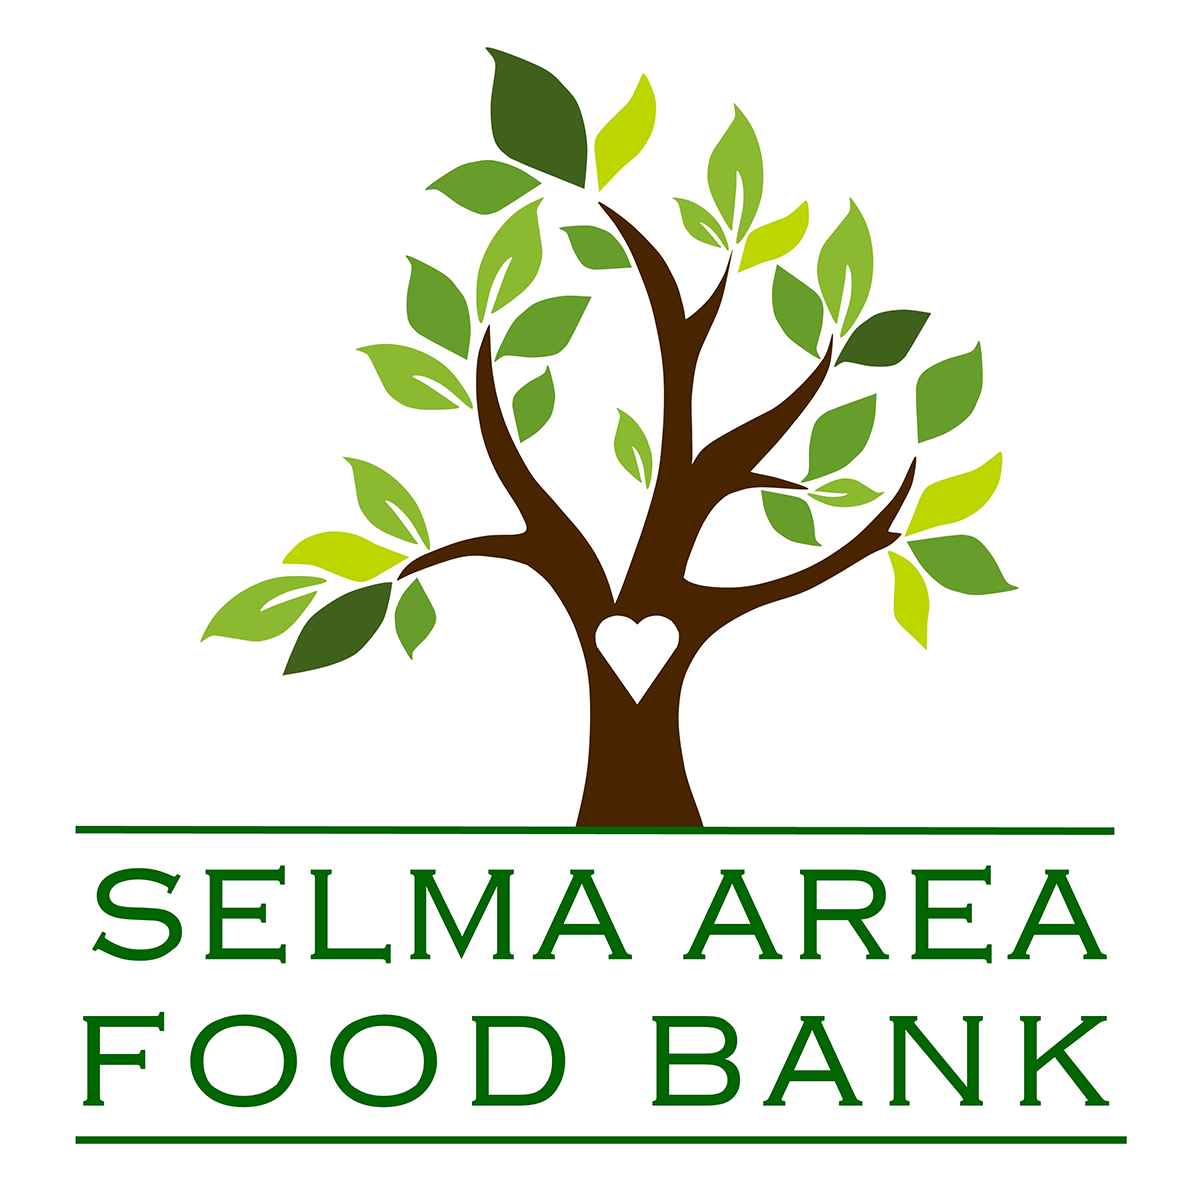 Selma Area Food Bank